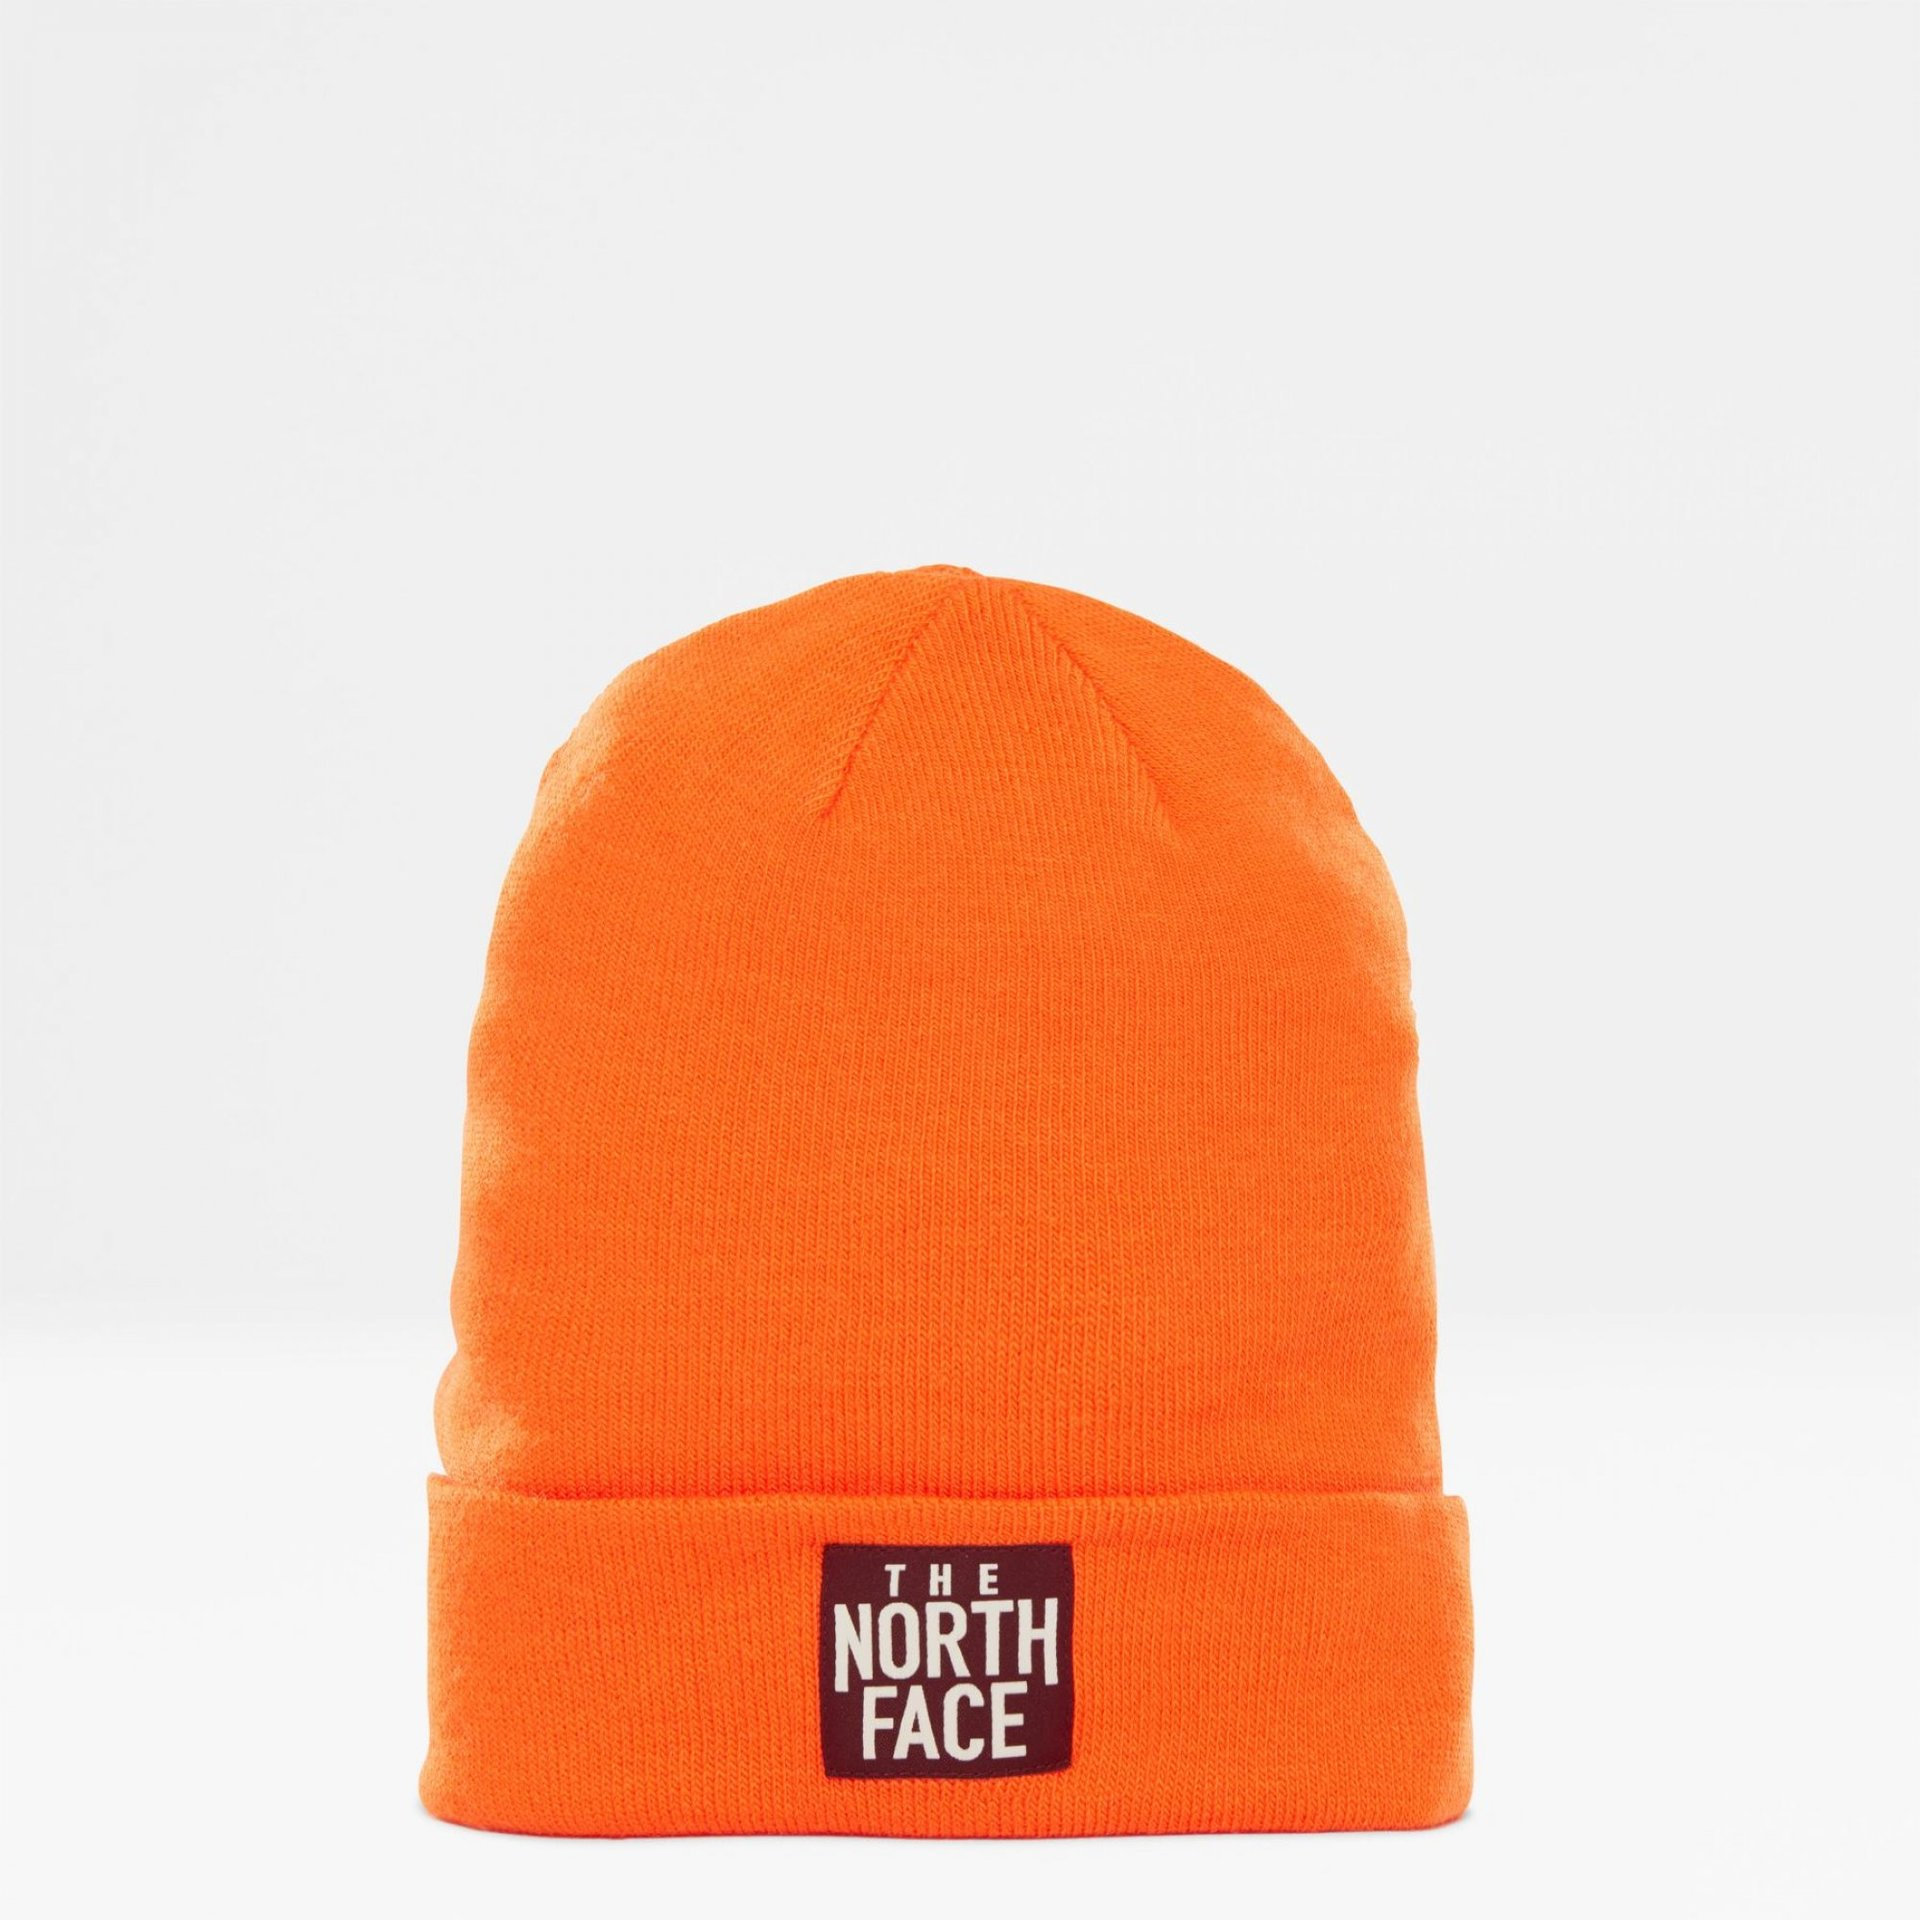 CZAPKA THE NORTH FACE DOCK WORKER PERSIAN ORANGE|FIG